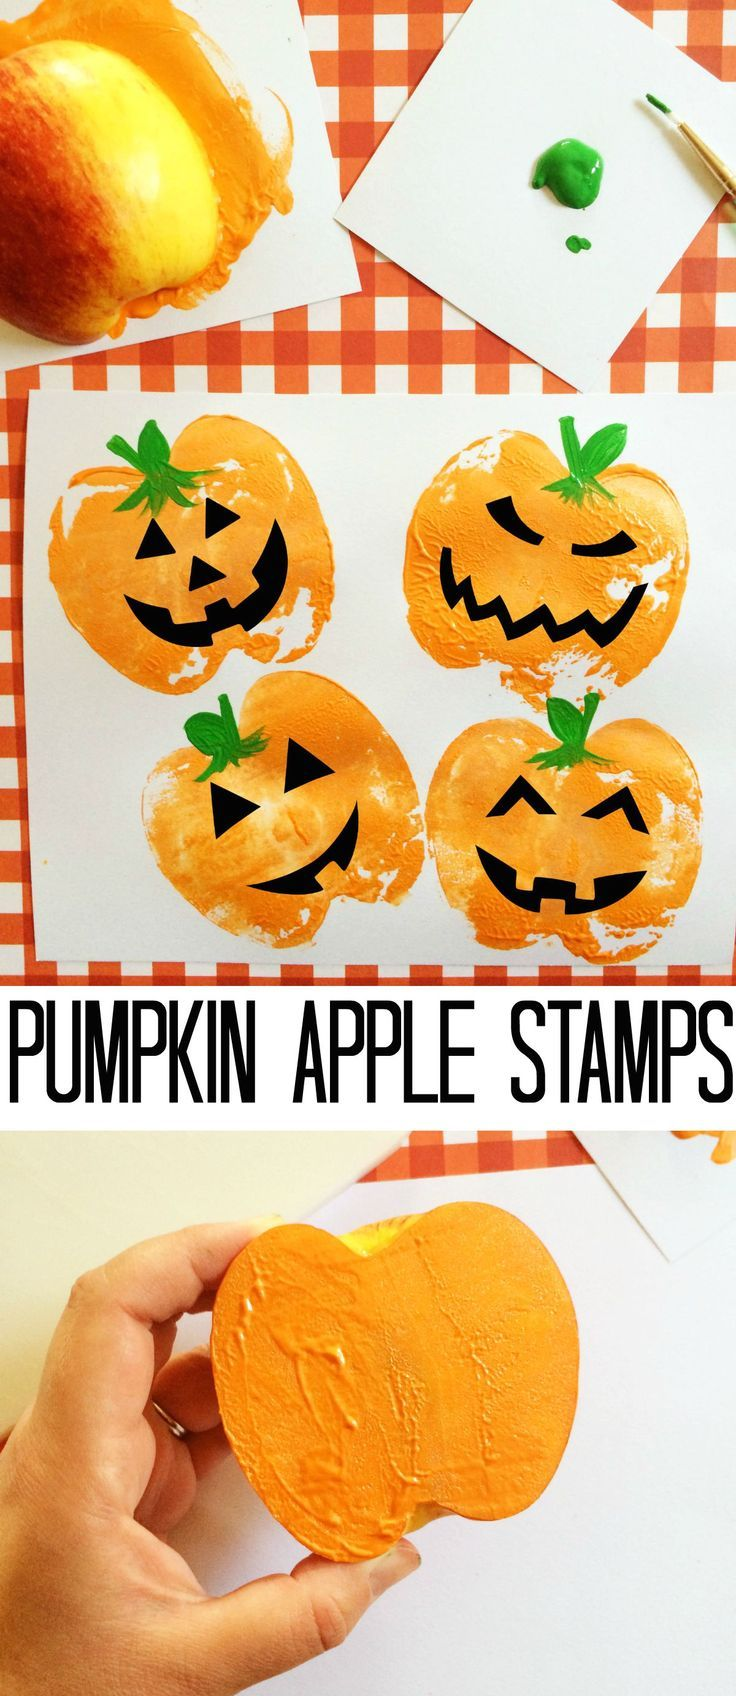 Pumpkin Apple Stamps - Frugal Mom Eh!